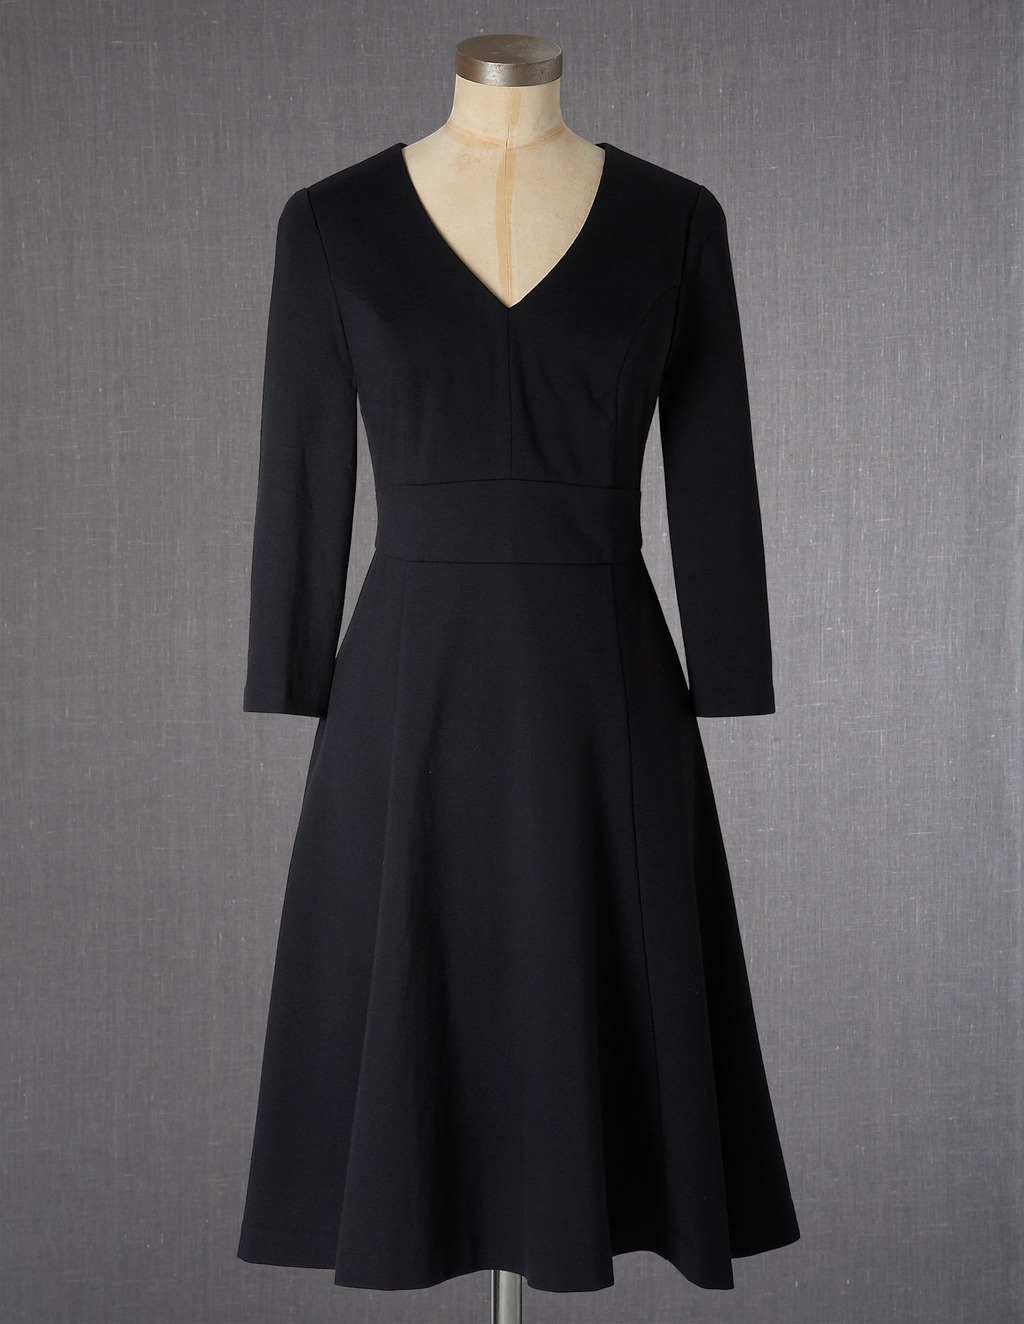 Clerkenwell Dress - neckline: v-neck; pattern: plain; predominant colour: black; occasions: evening, work; length: on the knee; fit: fitted at waist & bust; style: fit & flare; fibres: cotton - stretch; sleeve length: 3/4 length; sleeve style: standard; pattern type: fabric; texture group: other - light to midweight; season: a/w 2013